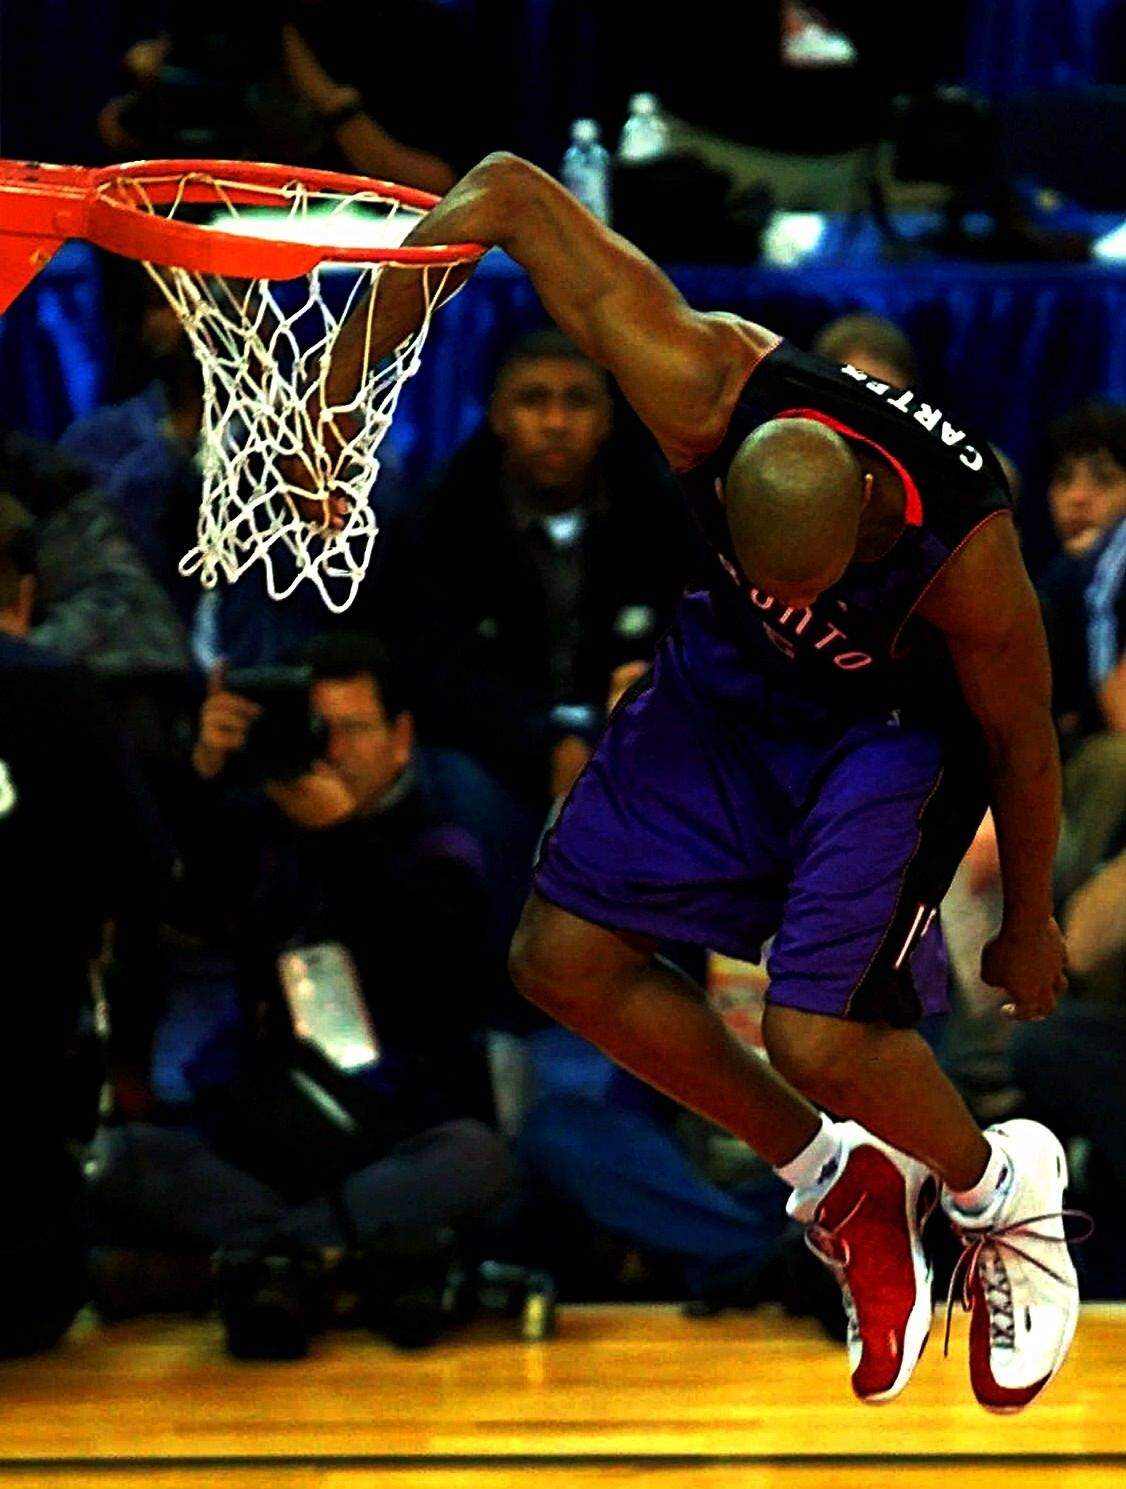 Vince Carter Toronto Raptors Slam Dunk Contest Sports Basketball Nba Players Basketball Players